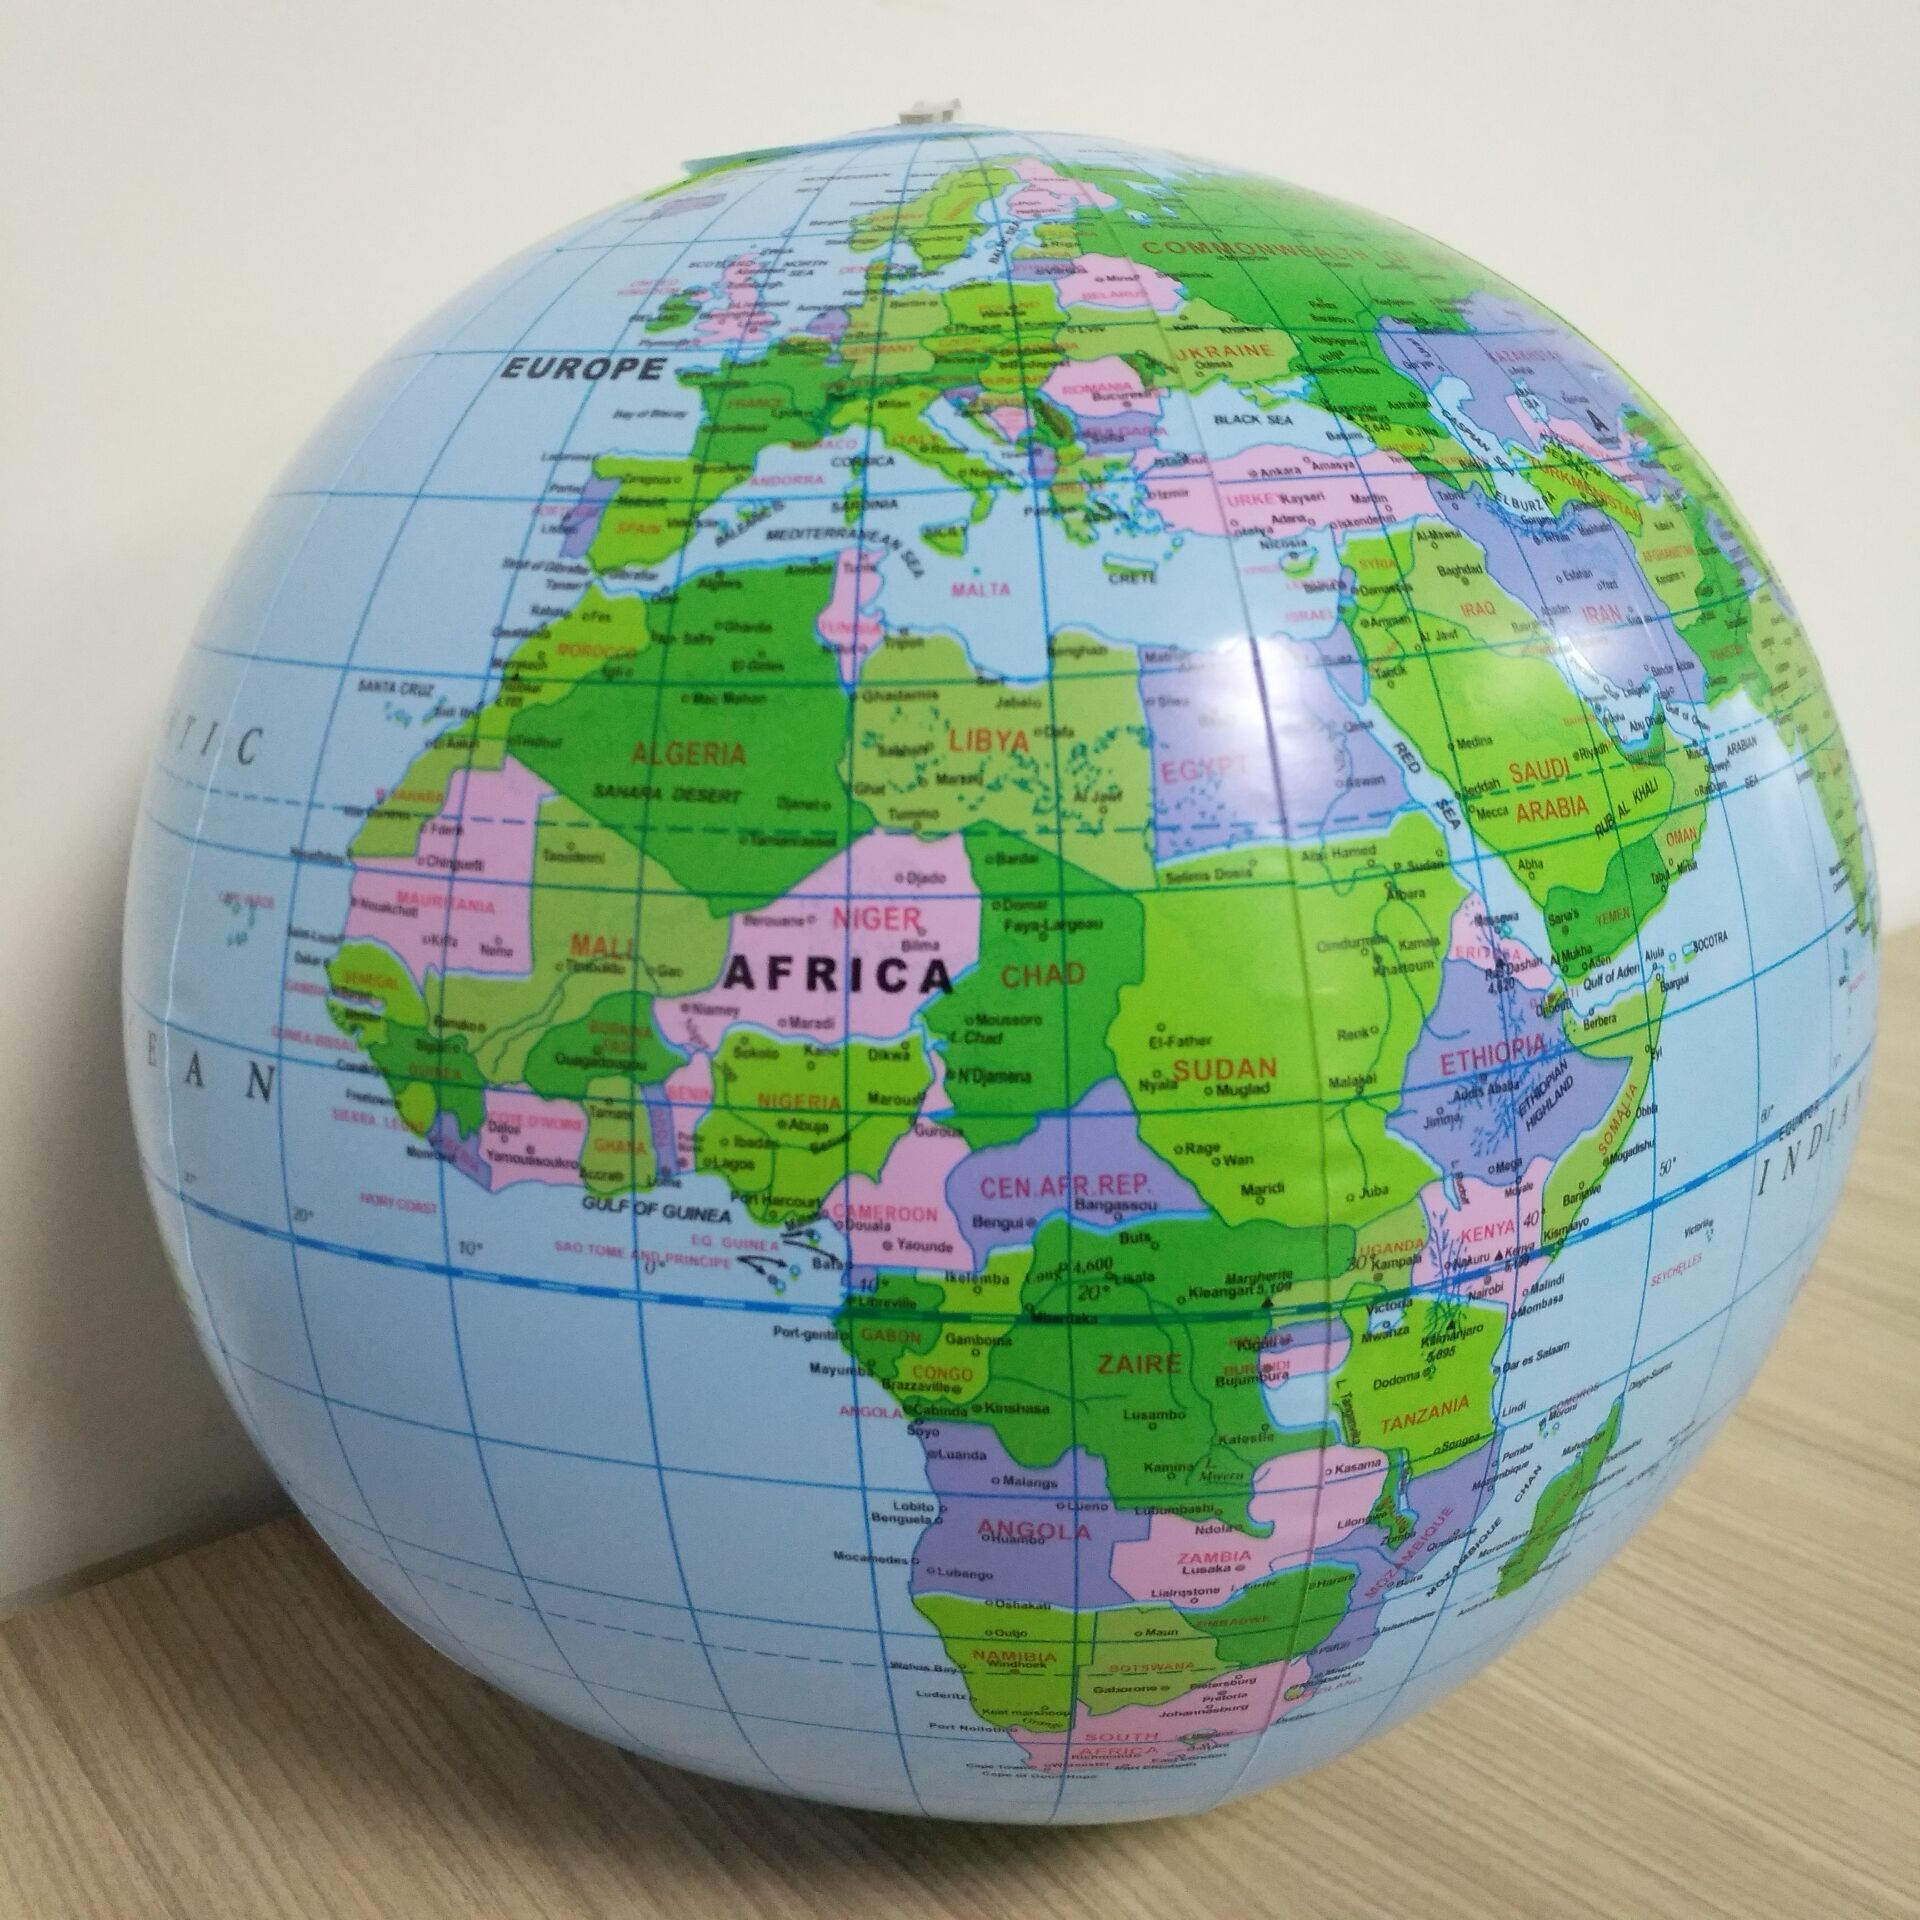 30cm Inflatable Globe World Earth Ocean Map Ball Educational Supplies Geography Learning Educational Beach Ball Kids Geography